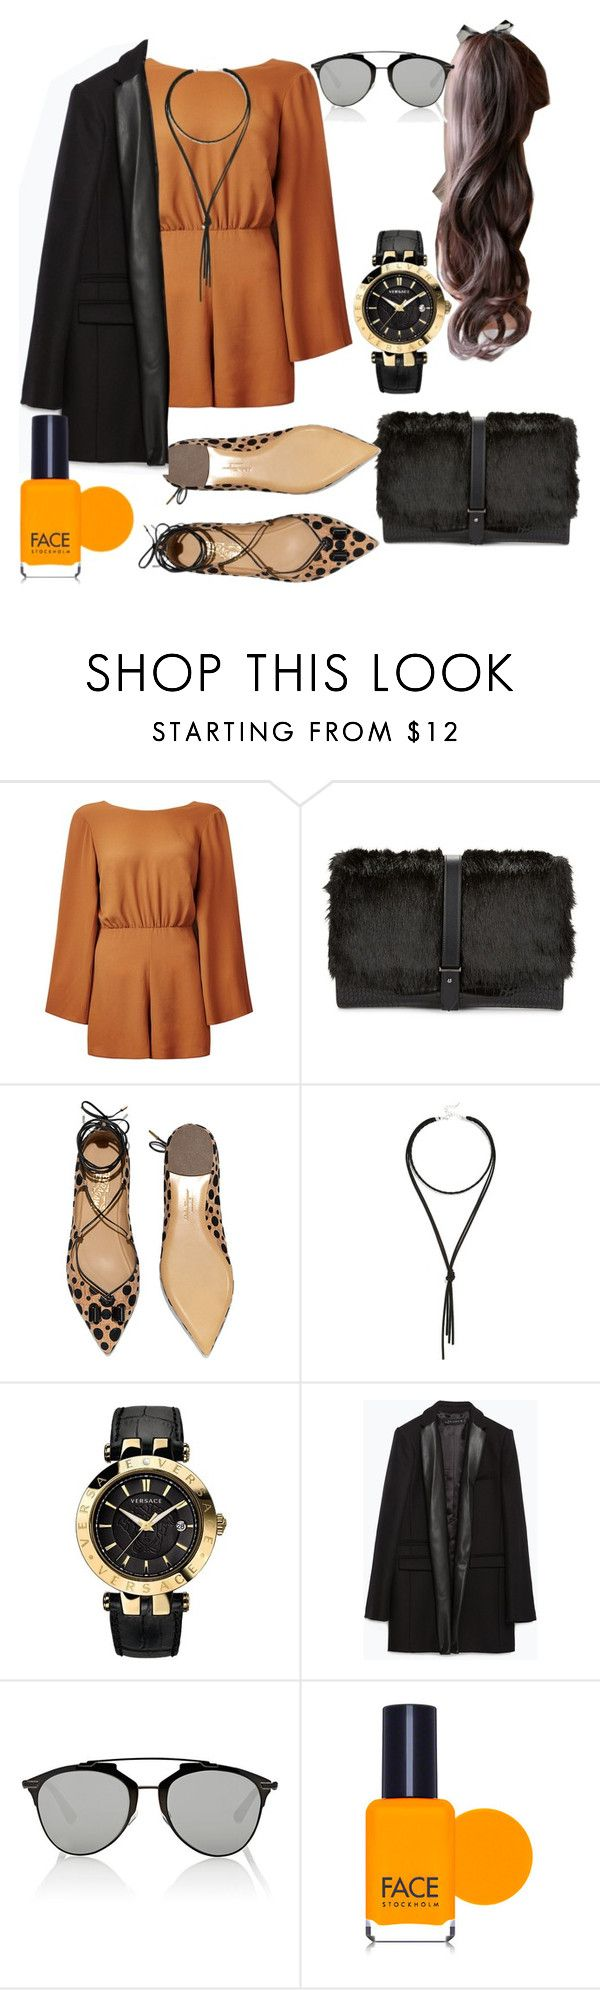 """""""Untitled #58"""" by maria-galvez-dominguez ❤ liked on Polyvore featuring Sam Edelman, Salvatore Ferragamo, Lulu*s, Versace, Zara, Christian Dior, FACE Stockholm, women's clothing, women and female"""